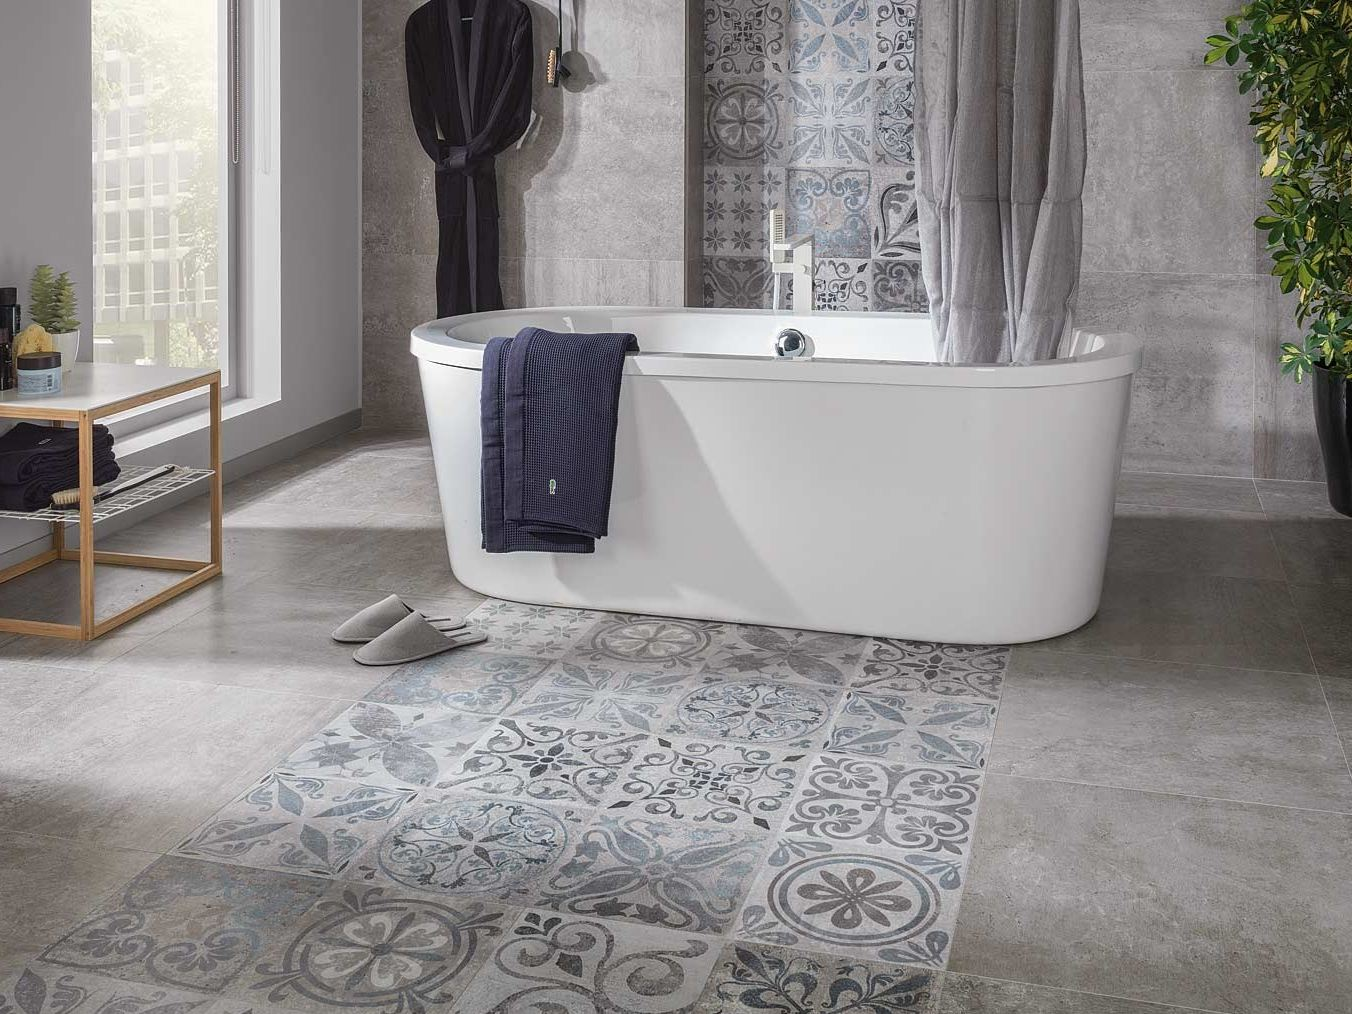 Rev tement de sol mur ston ker antique by porcelanosa for Tarif carrelage porcelanosa